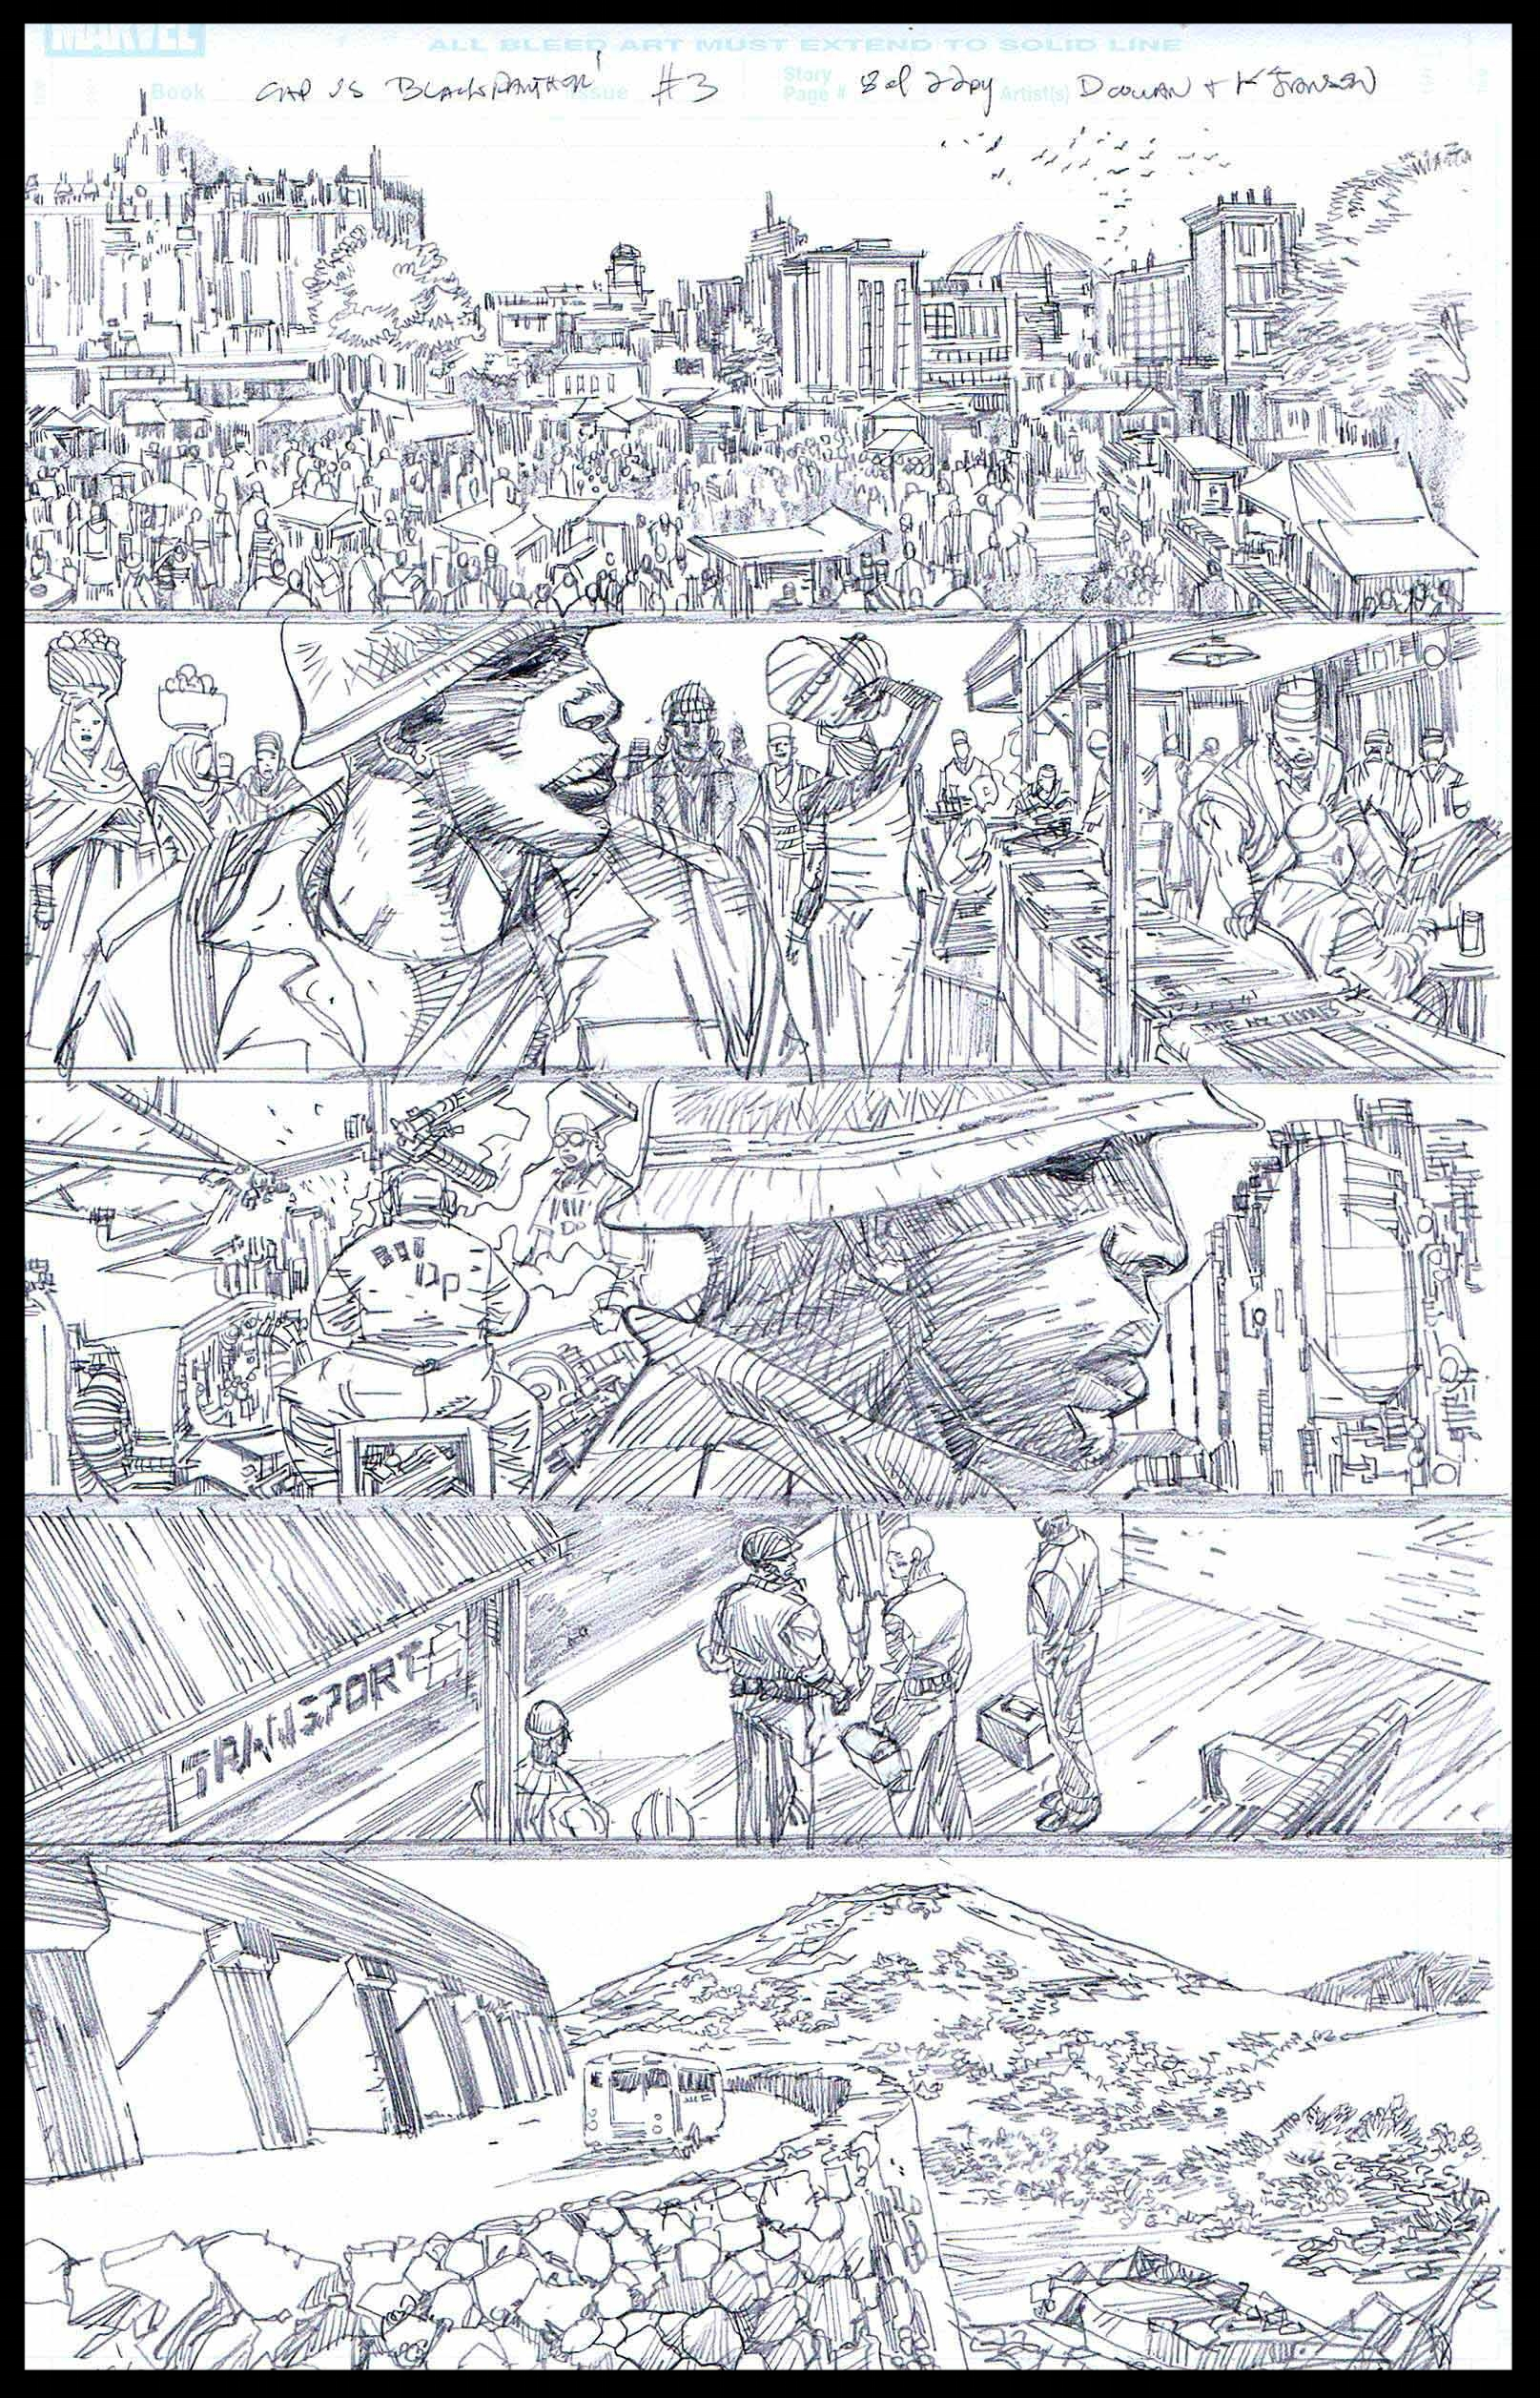 Flags of Our Fathers #3 - Page 8 - Pencils